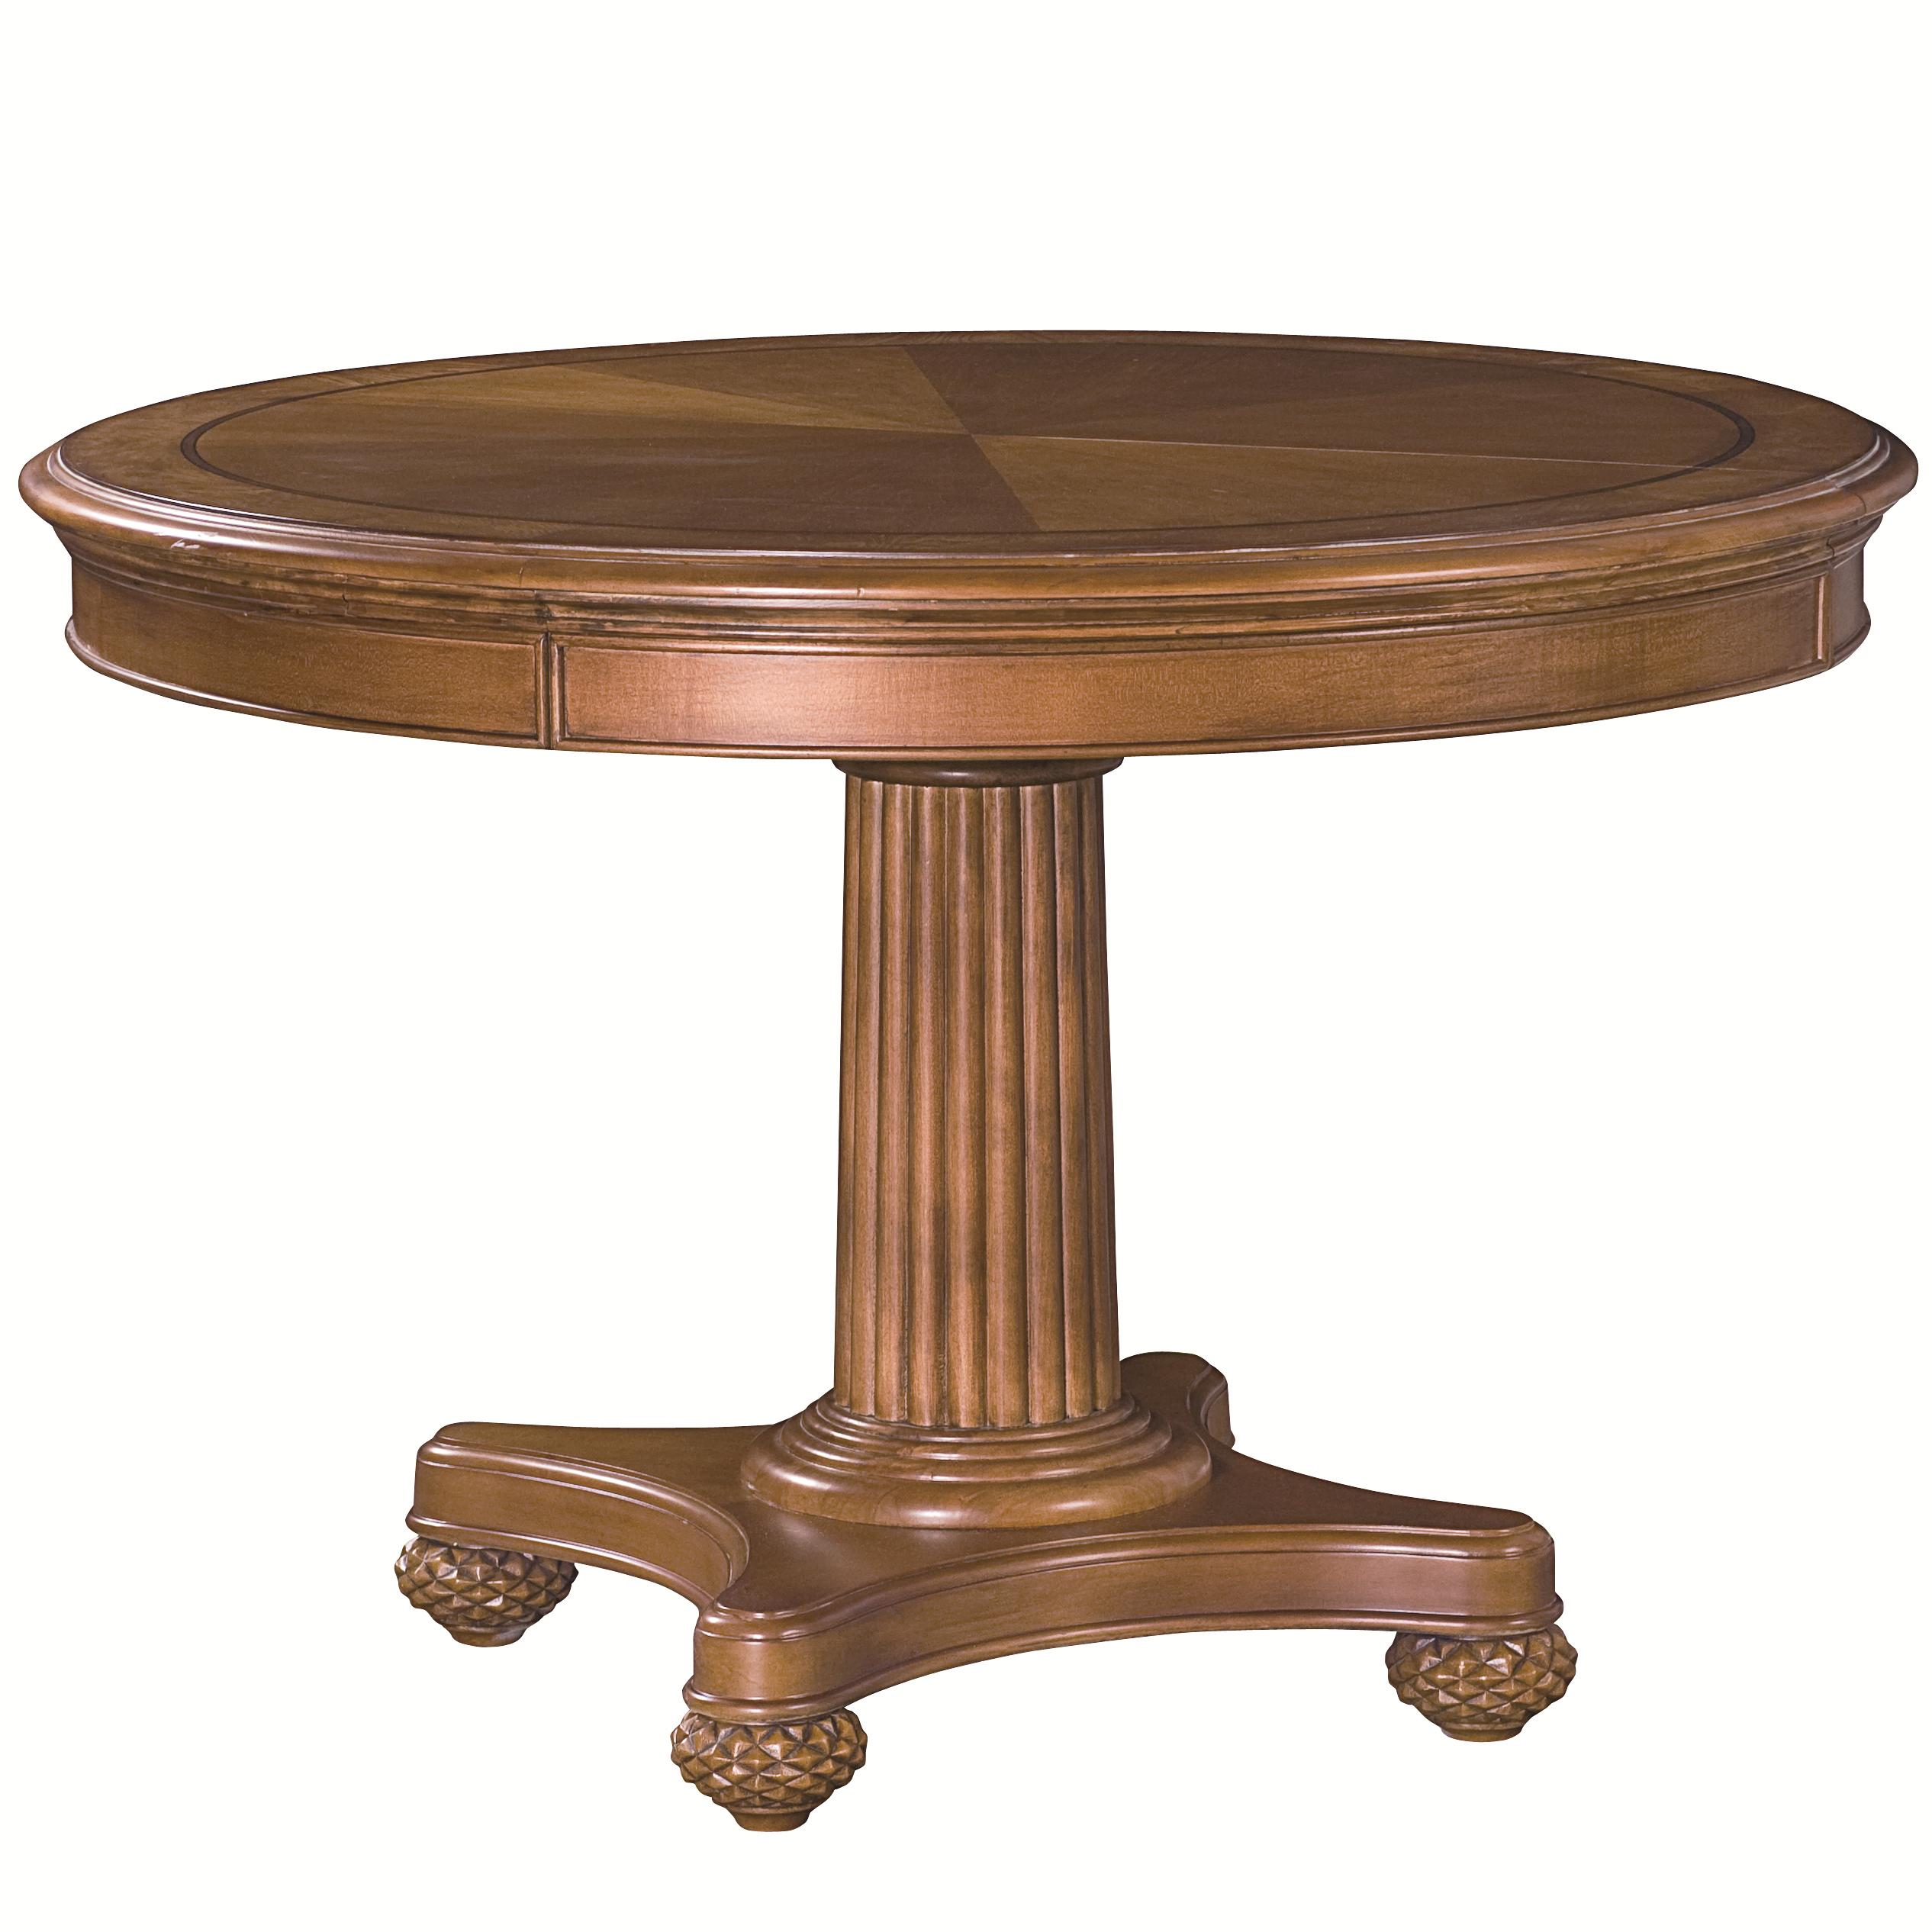 Round single pedestal dining table with fluted details for Dining room table replacement leaf